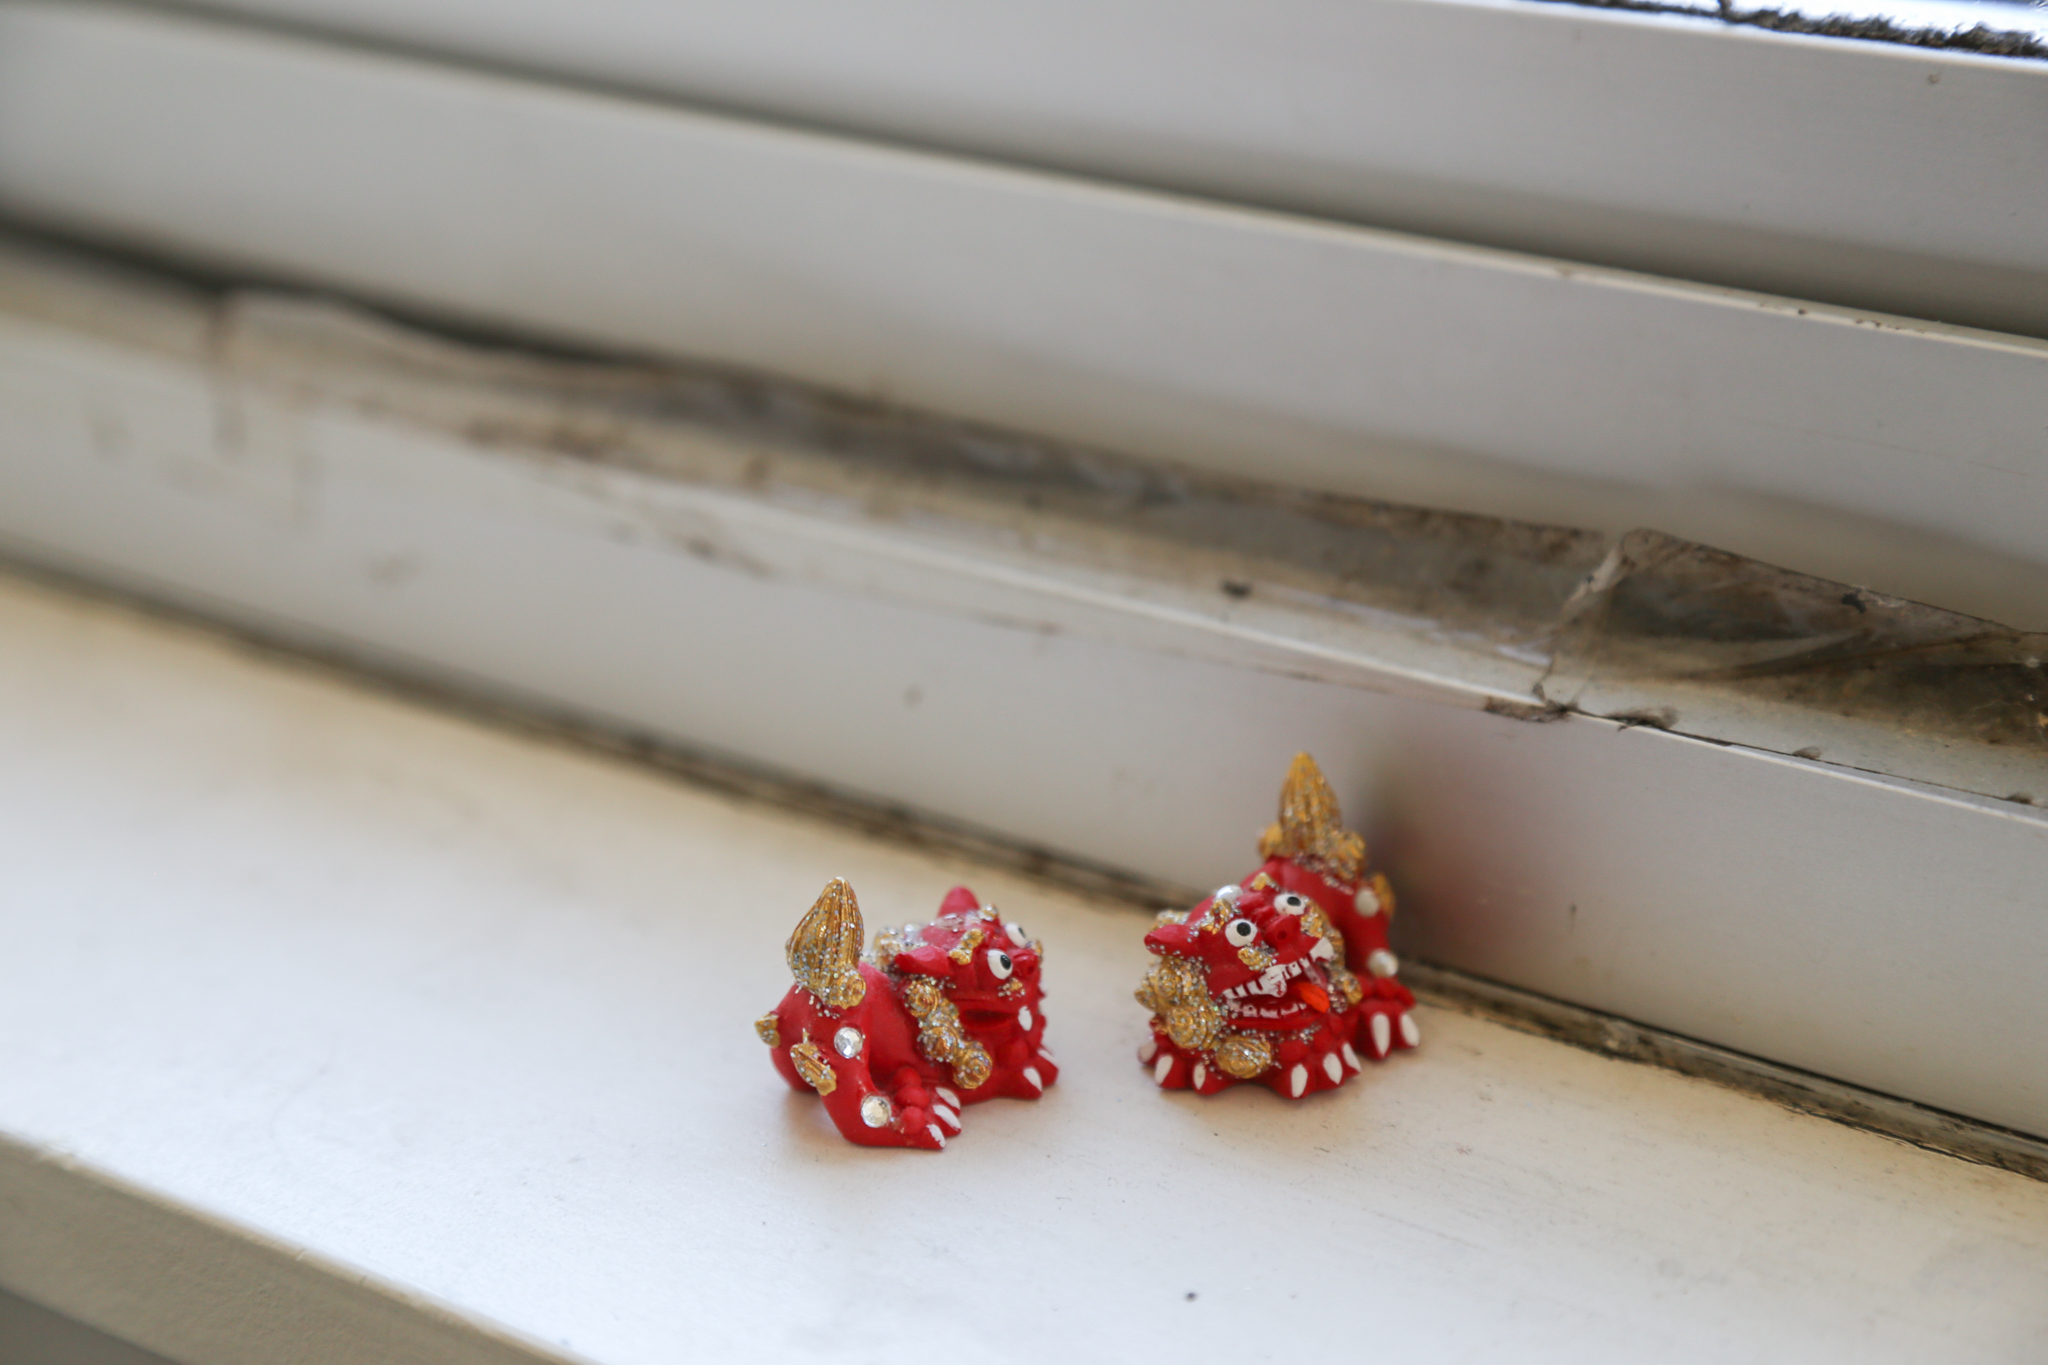 Two miniature lion figurines dance on Lee's window sill, a reminder of a trip to Japan with her family.